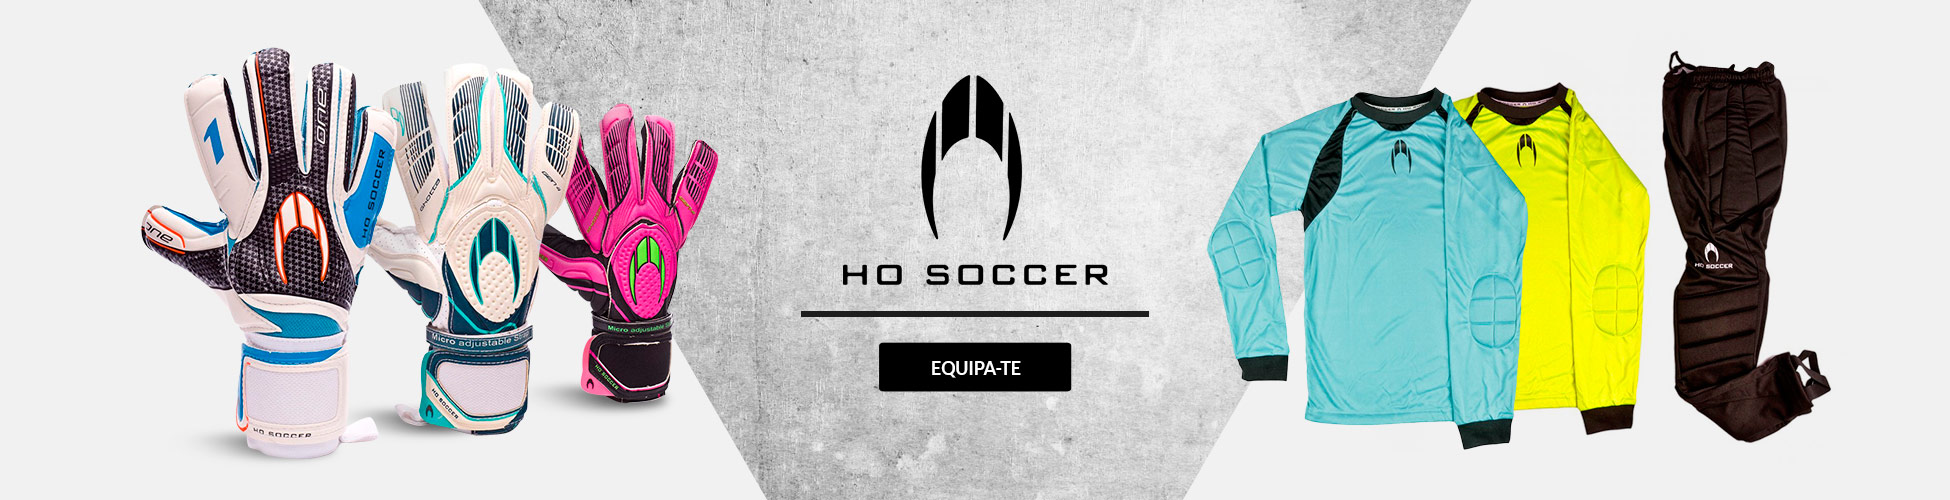 Equipate con HO Soccer PT